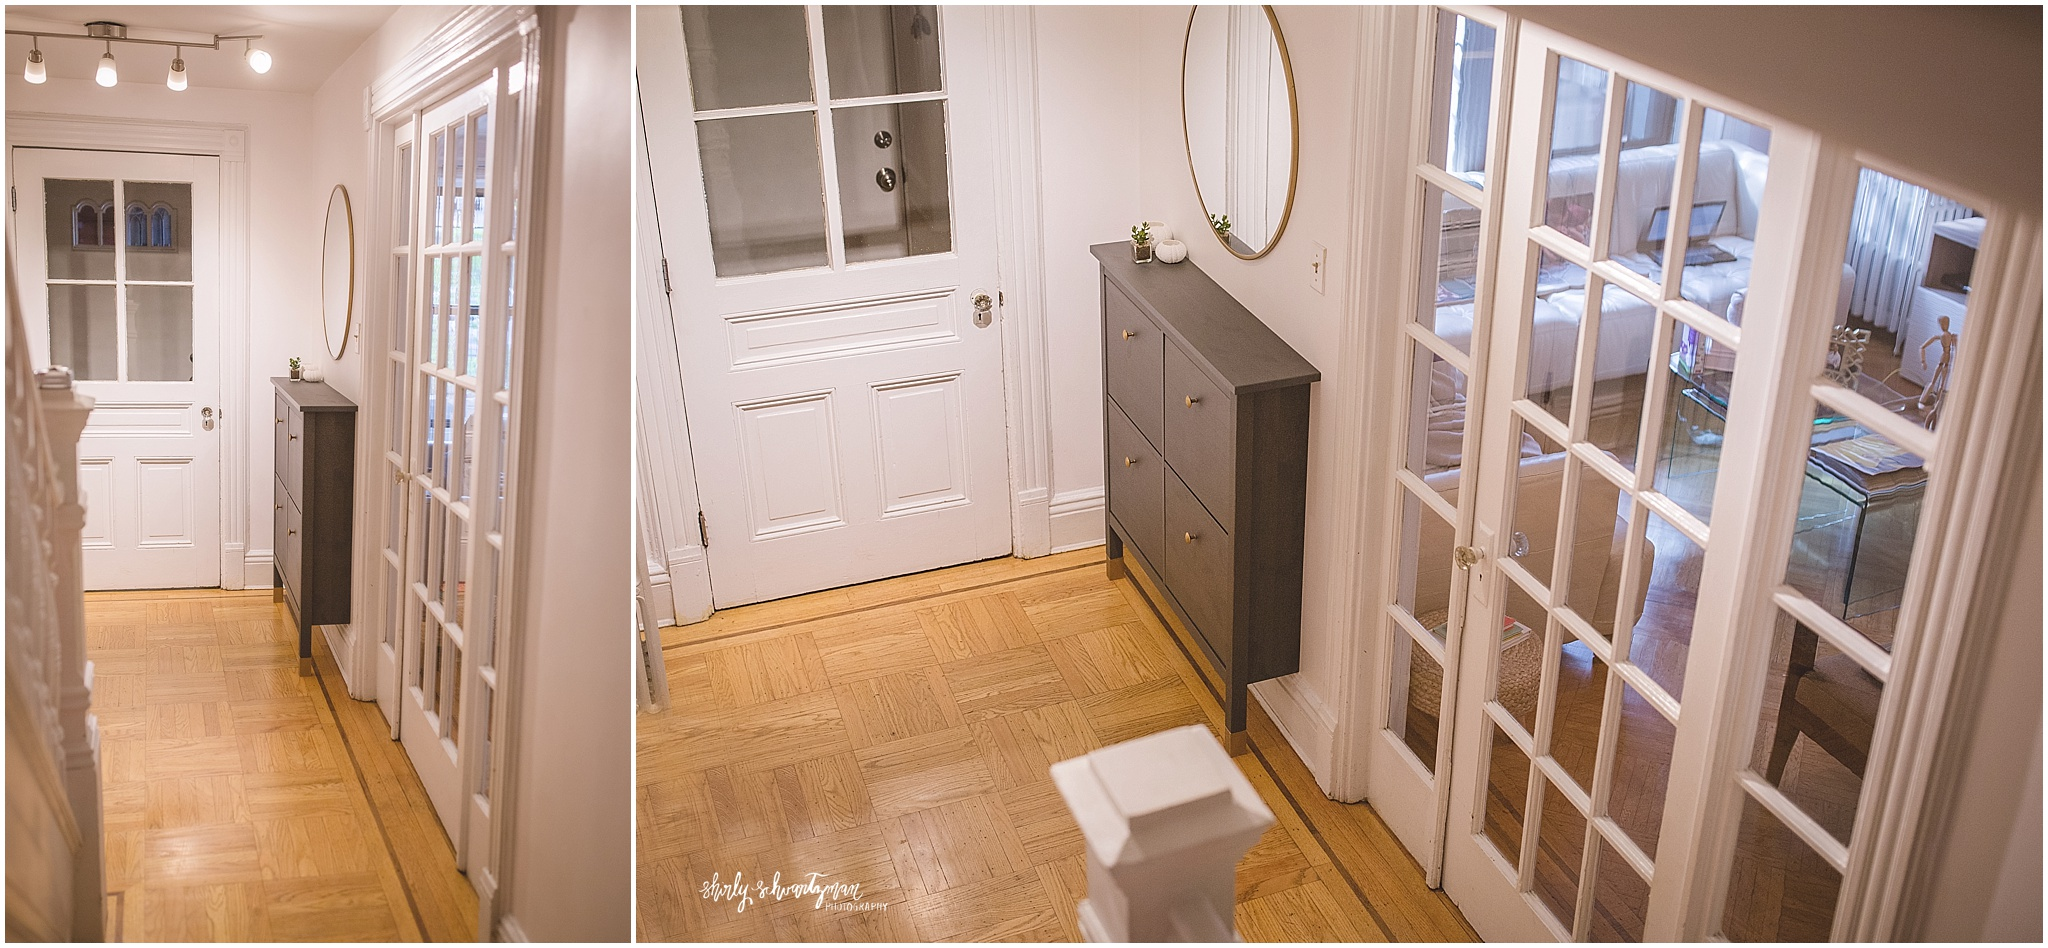 Ikea Hack Hemnes Shoe Cabinet Storage For Tall Baseboards